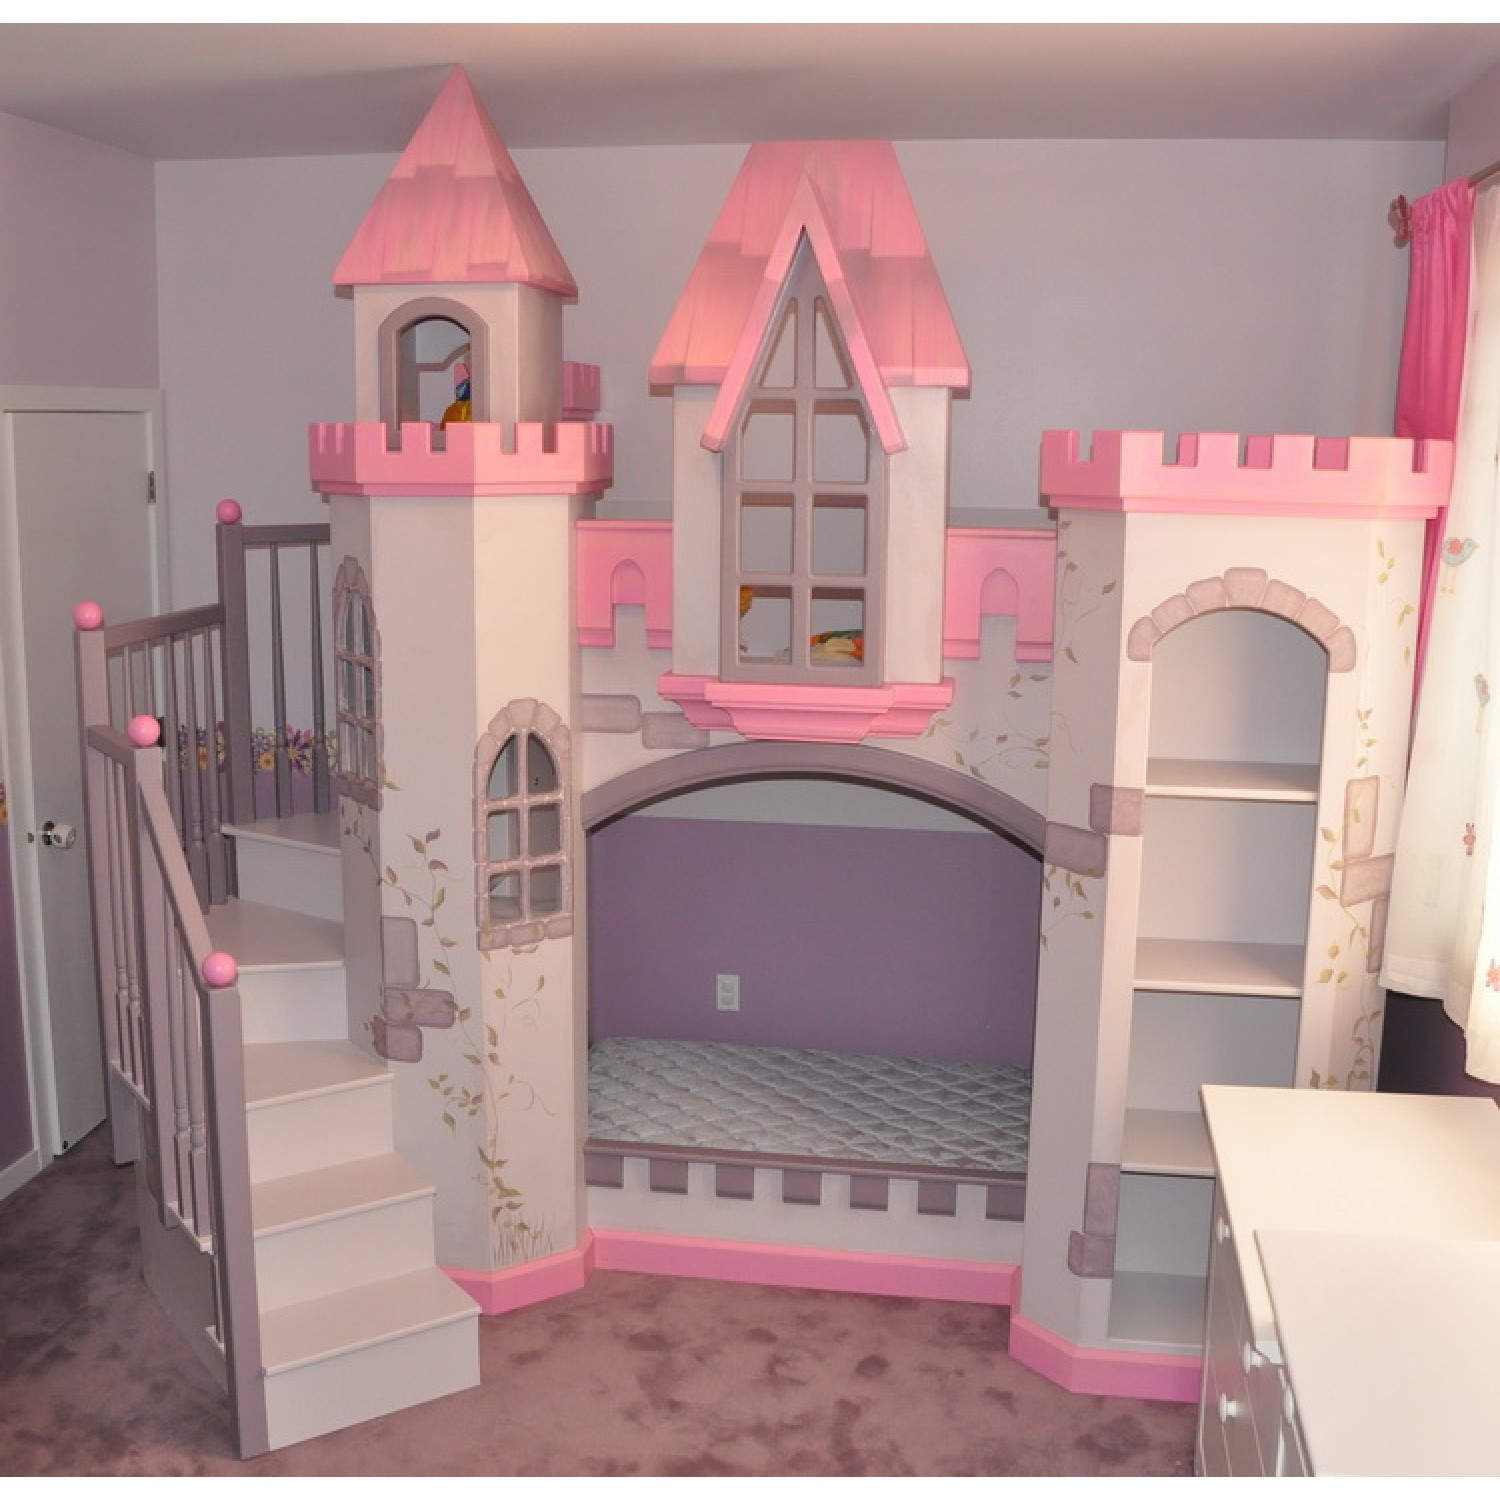 file: Complete Diy castle bed plans